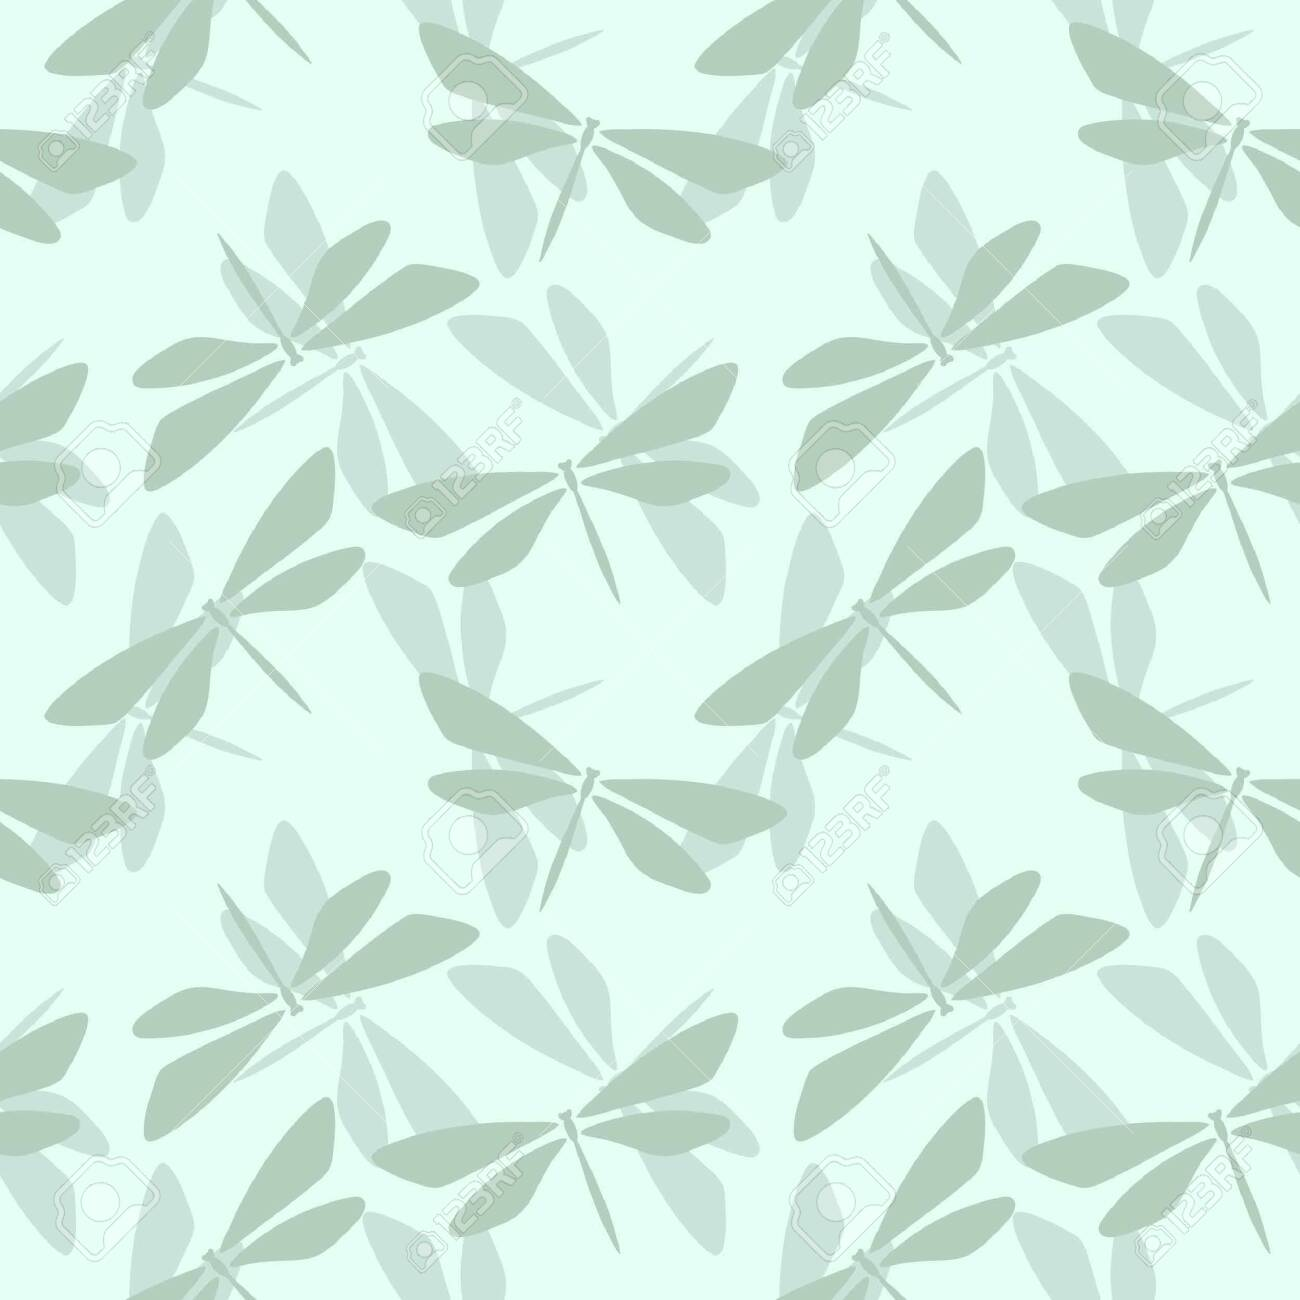 Pastel green seamless repeat pattern with dragonfly elements. - 151505825